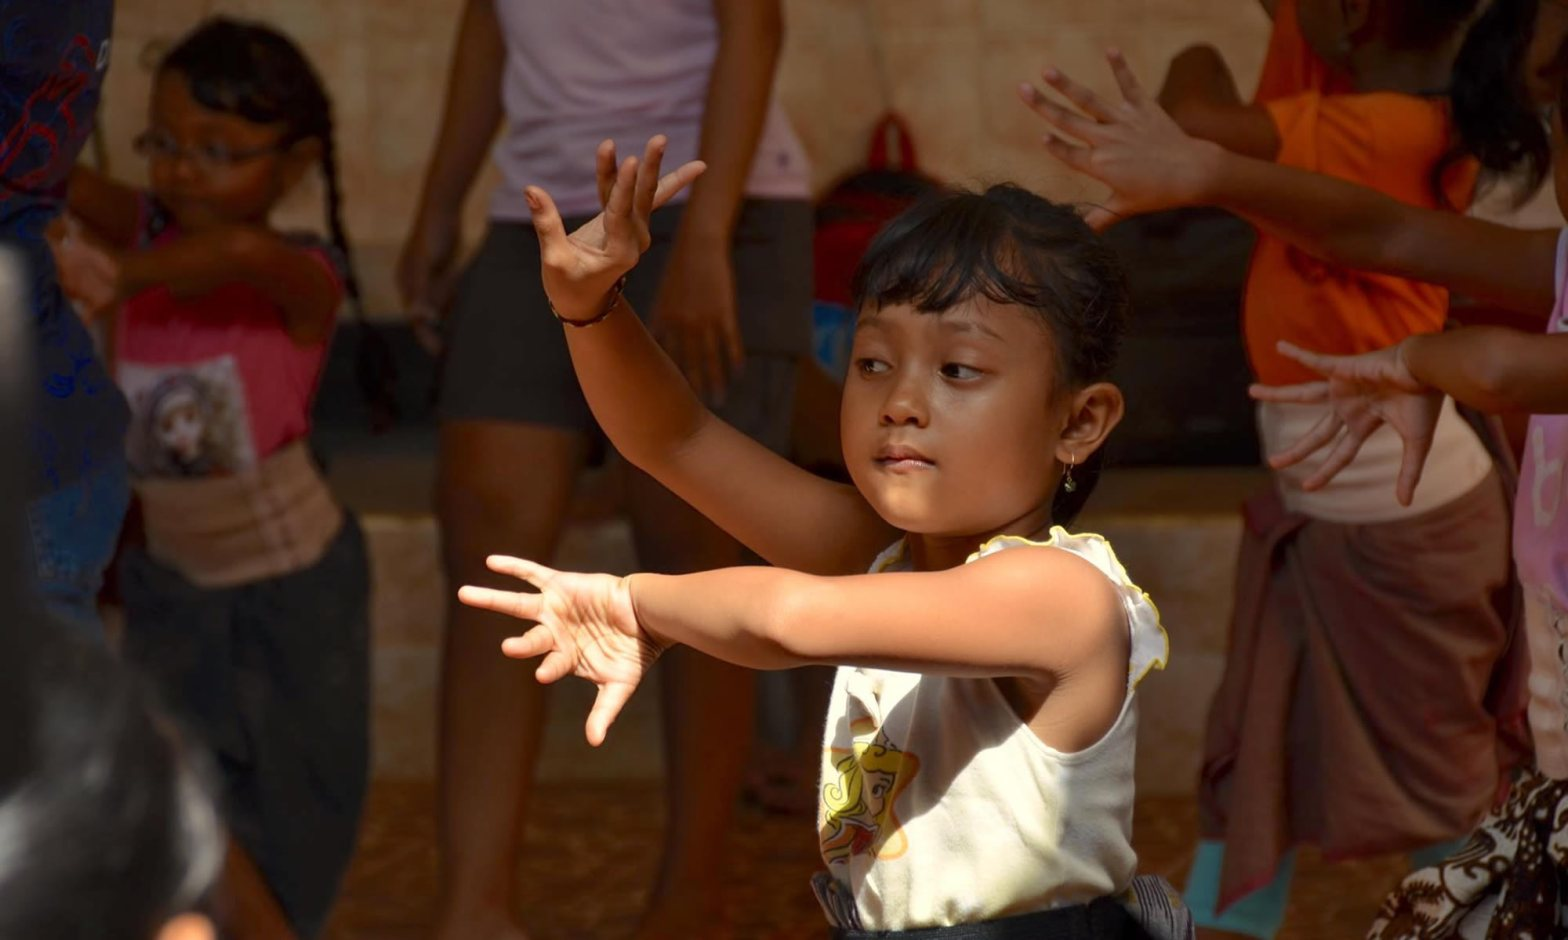 A child dances at a dance studio in Bali.